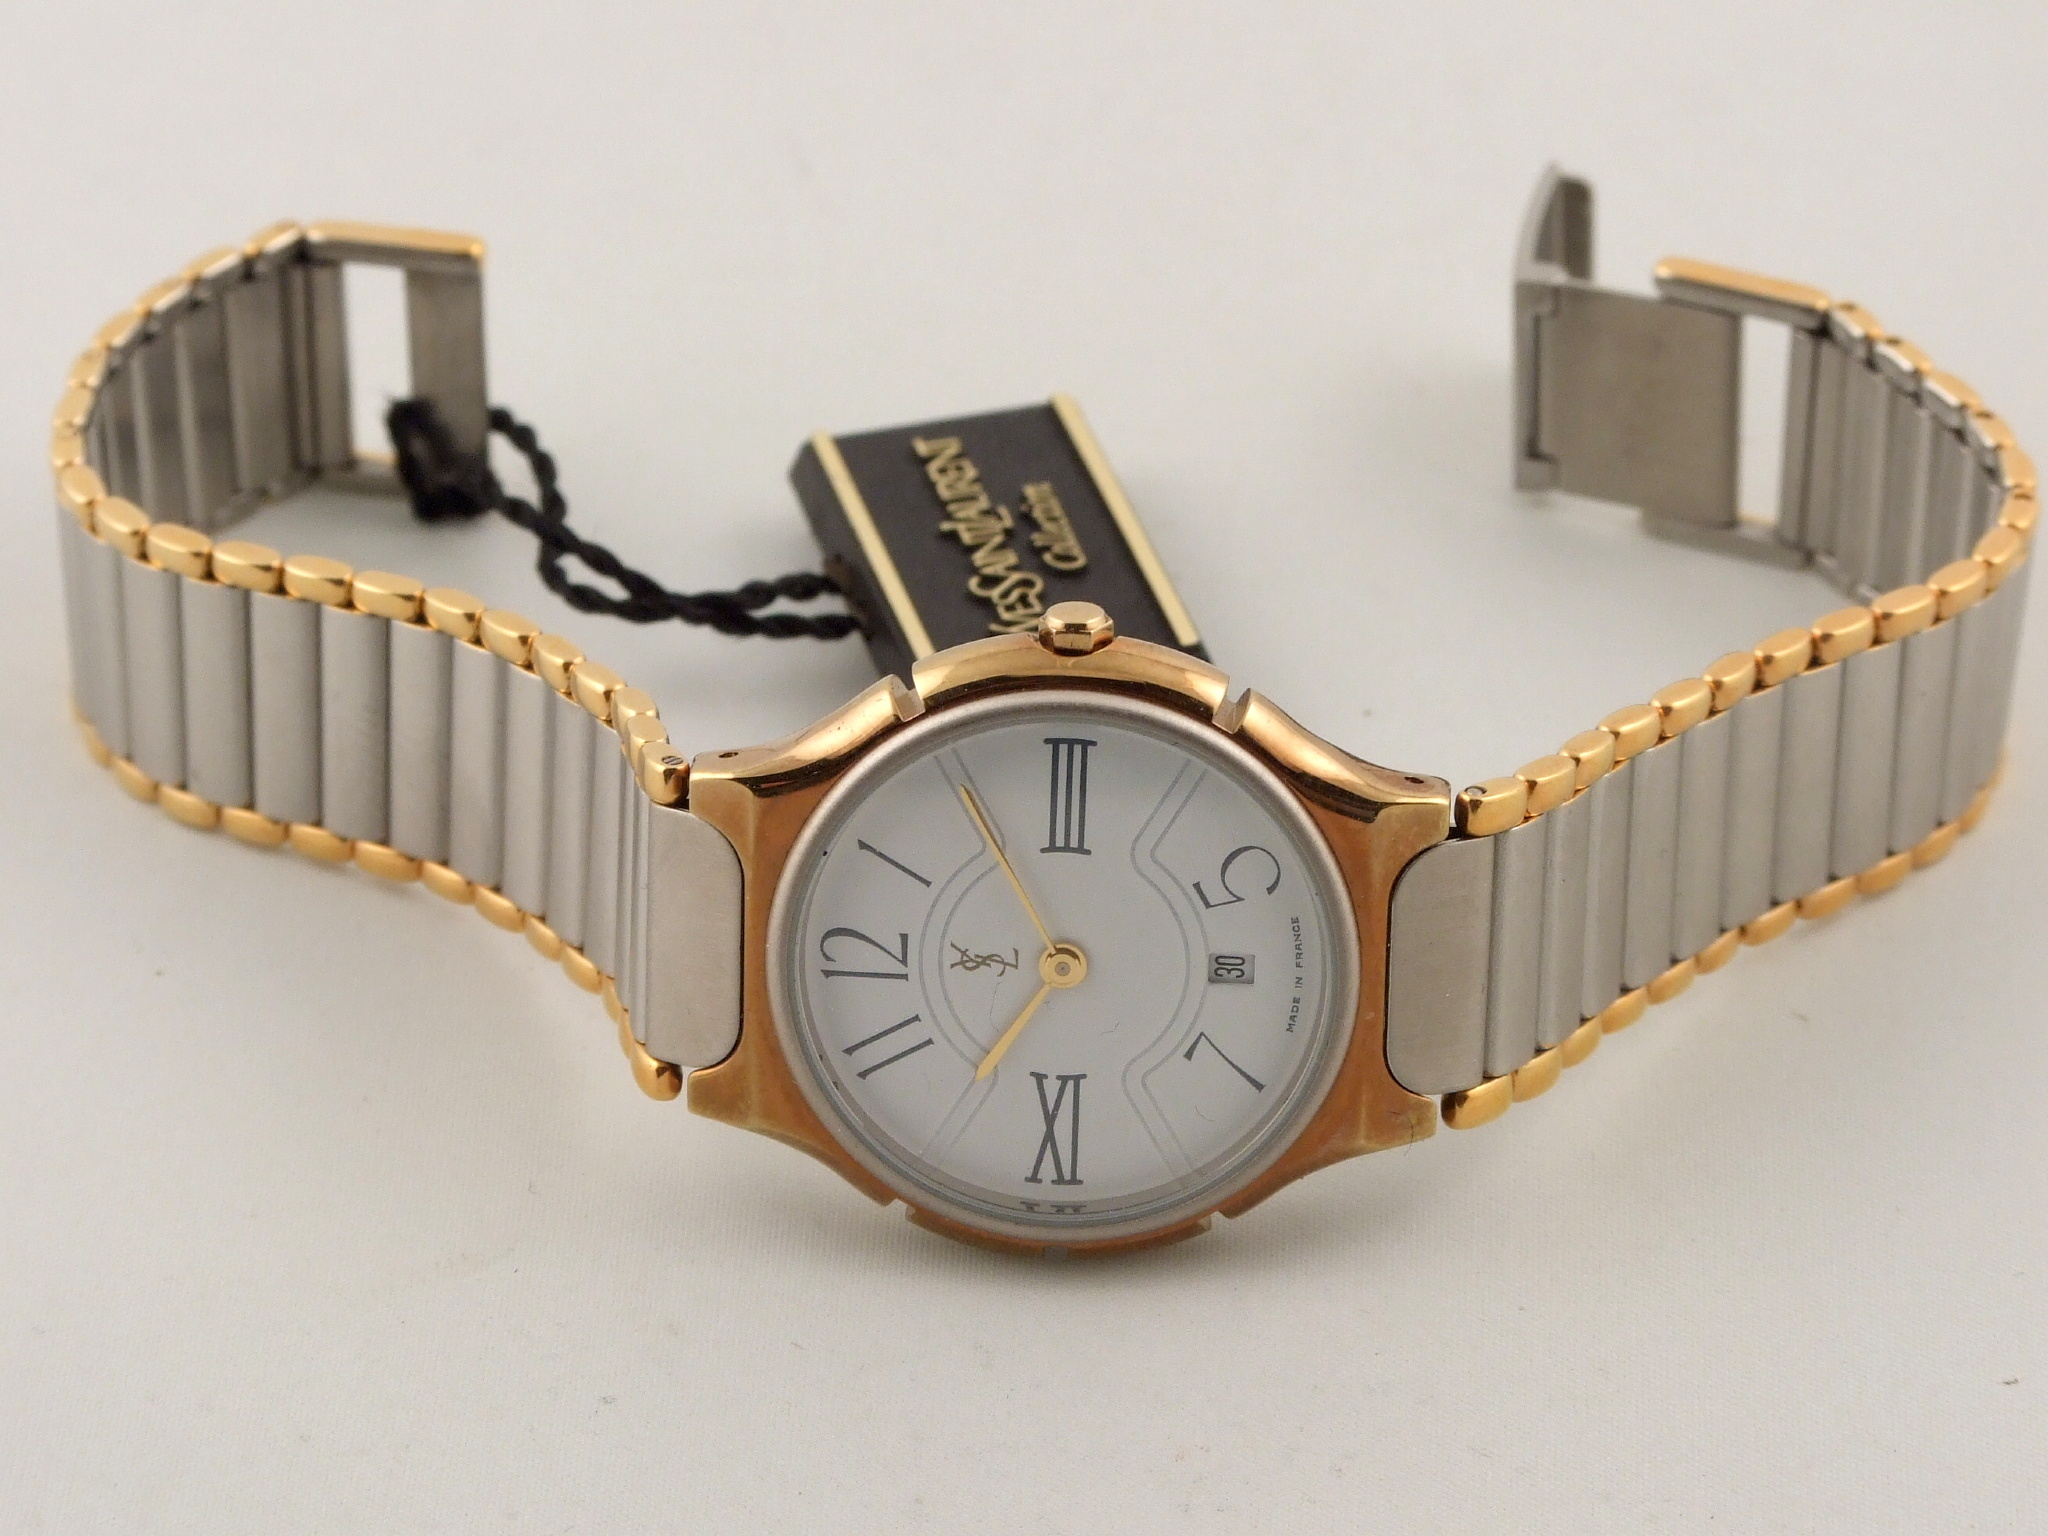 ysl yves saint laurent y212911 watch